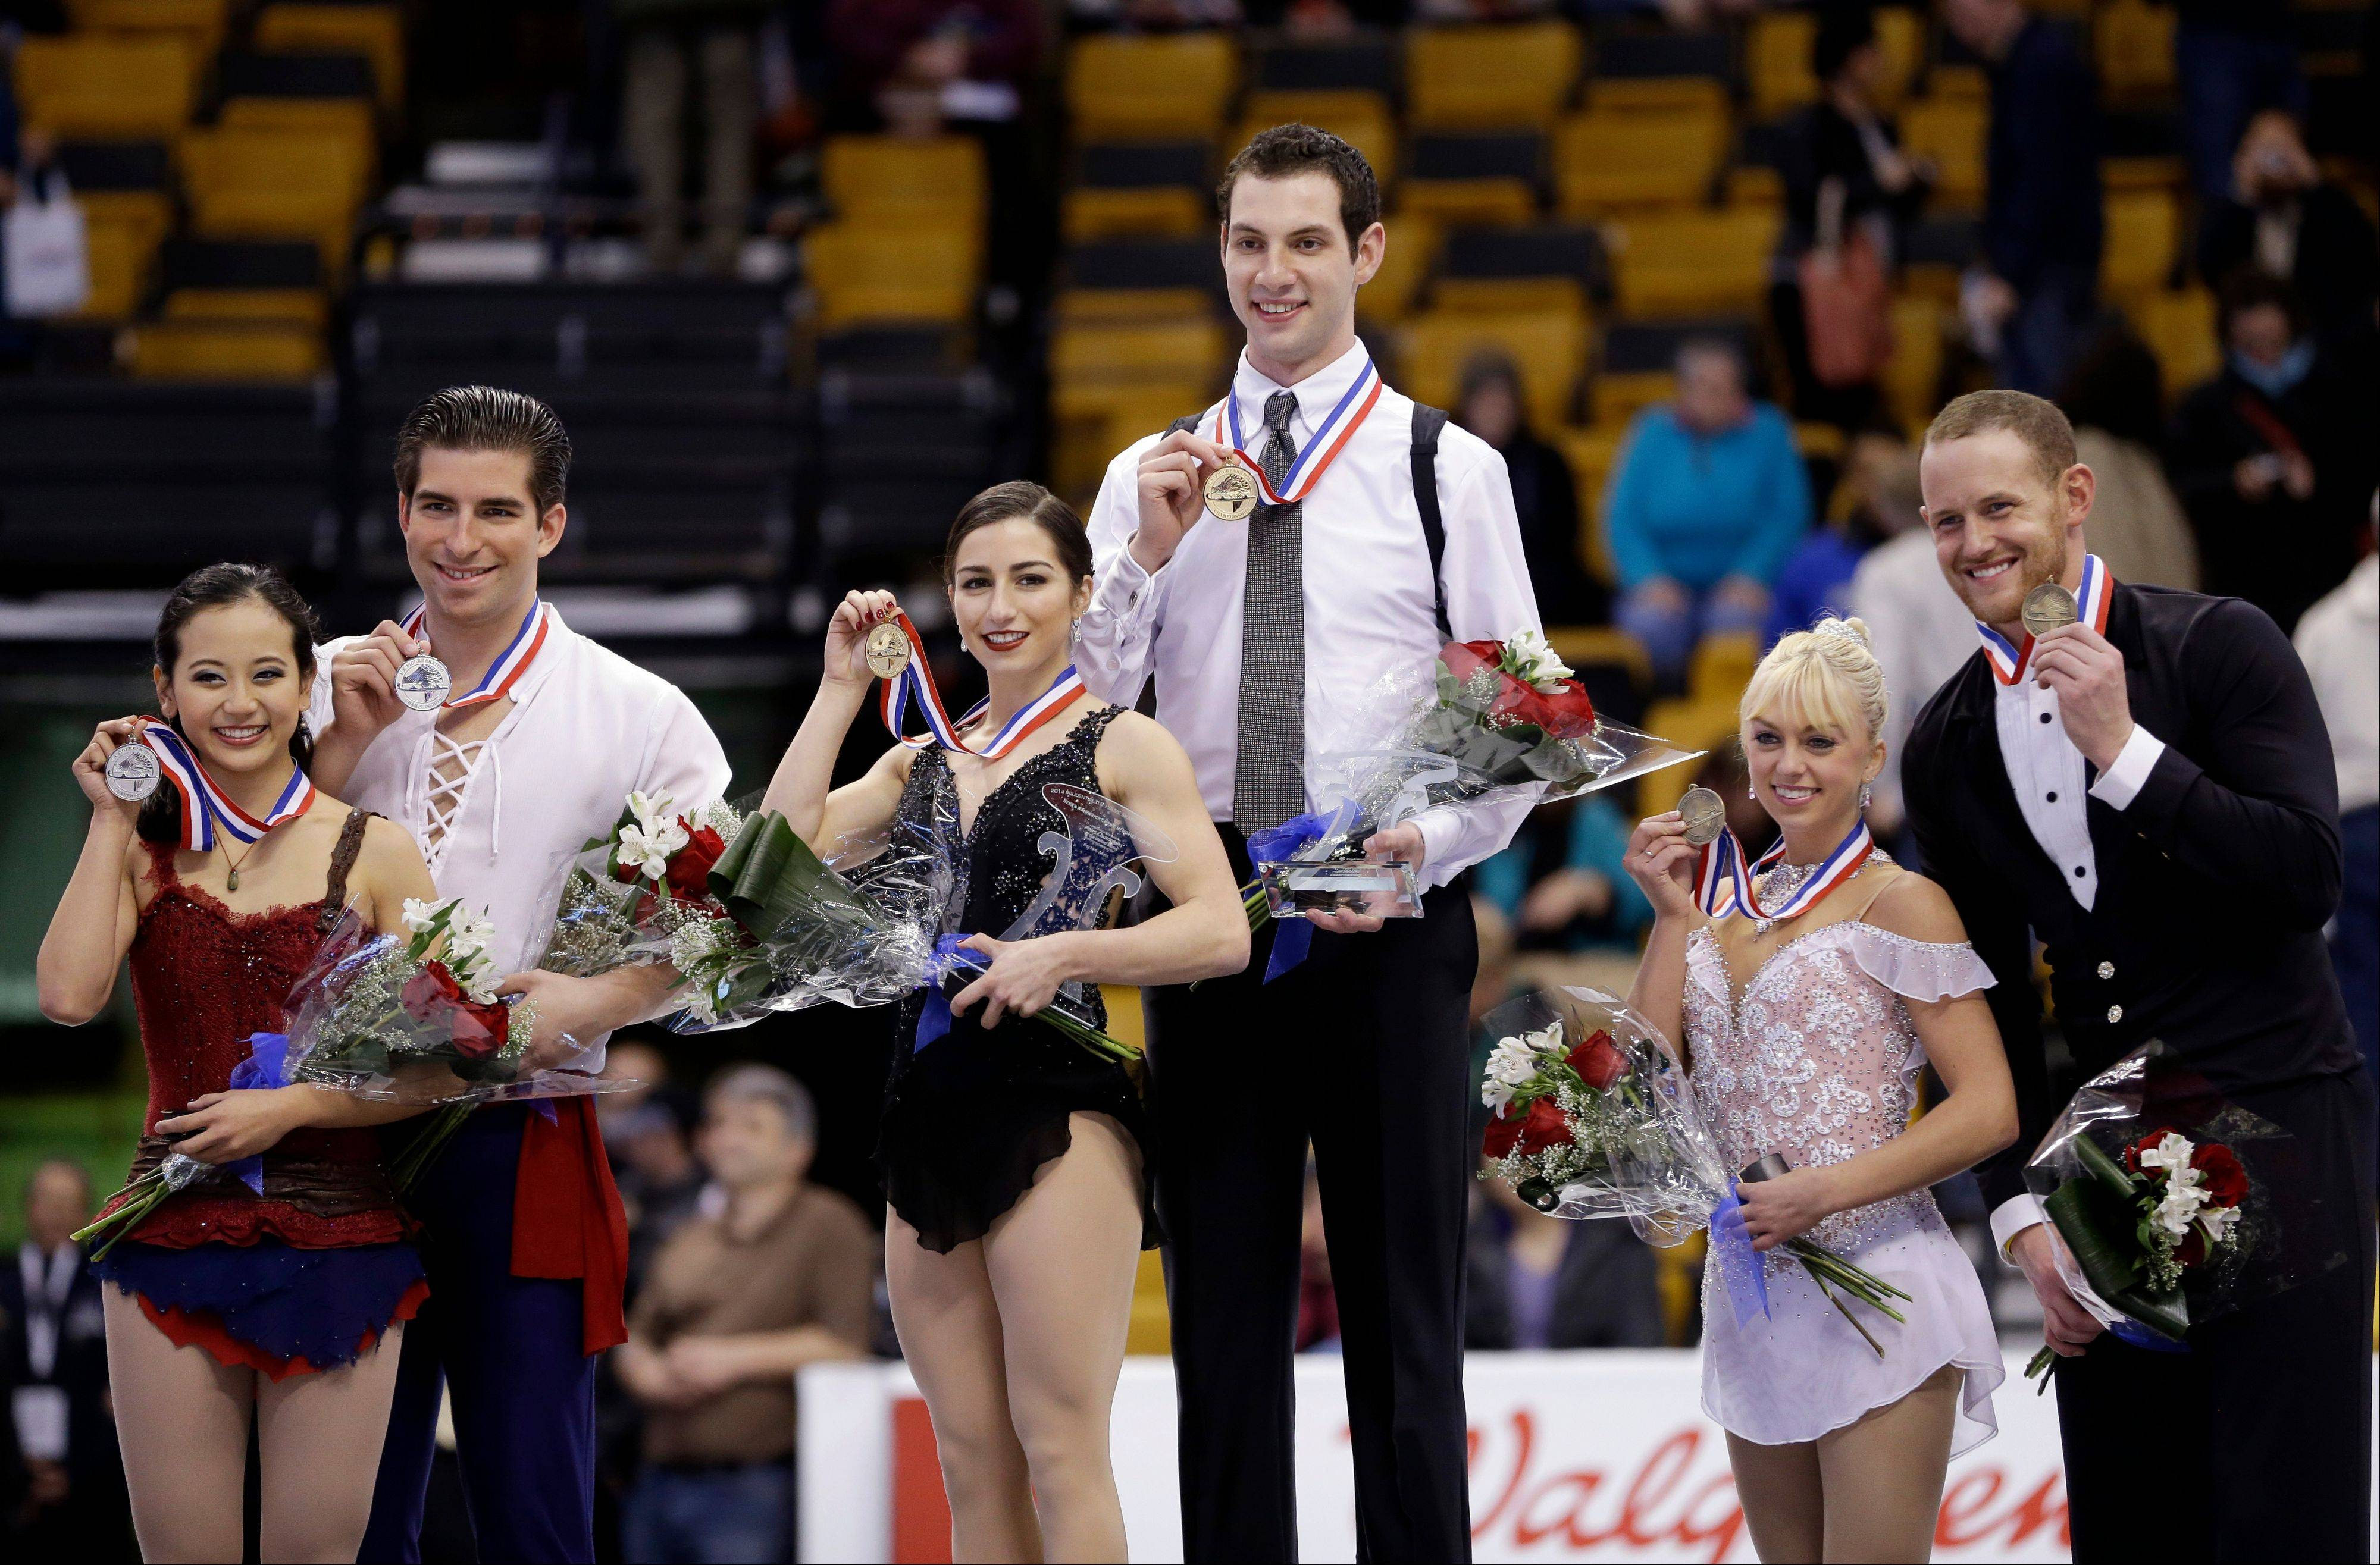 Marissa Castelli and Simon Shnapir, middle and first place winner in the pairs competition, pose with second-place winner Felicia Zhang and Nathan Bartholomay, left, and third-place winner Caydee Denney and John Coughlin during an awards ceremony at the U.S. Figure Skating Championships Saturday.